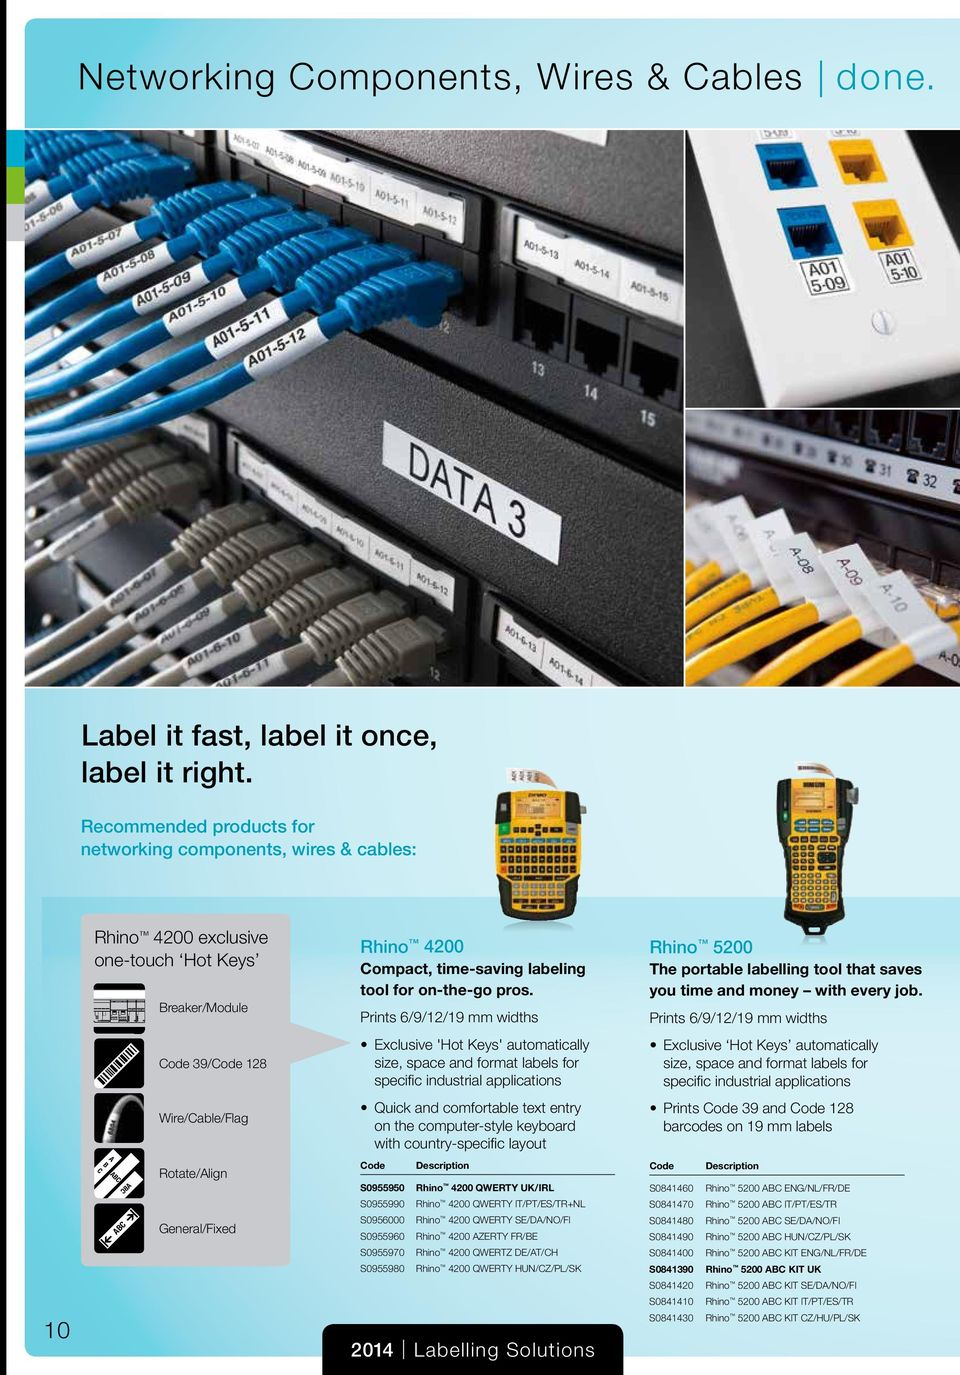 Prints 6/9/12/19 mm widths Rhino 5200 The portable labelling tool that saves you time and money with every job.